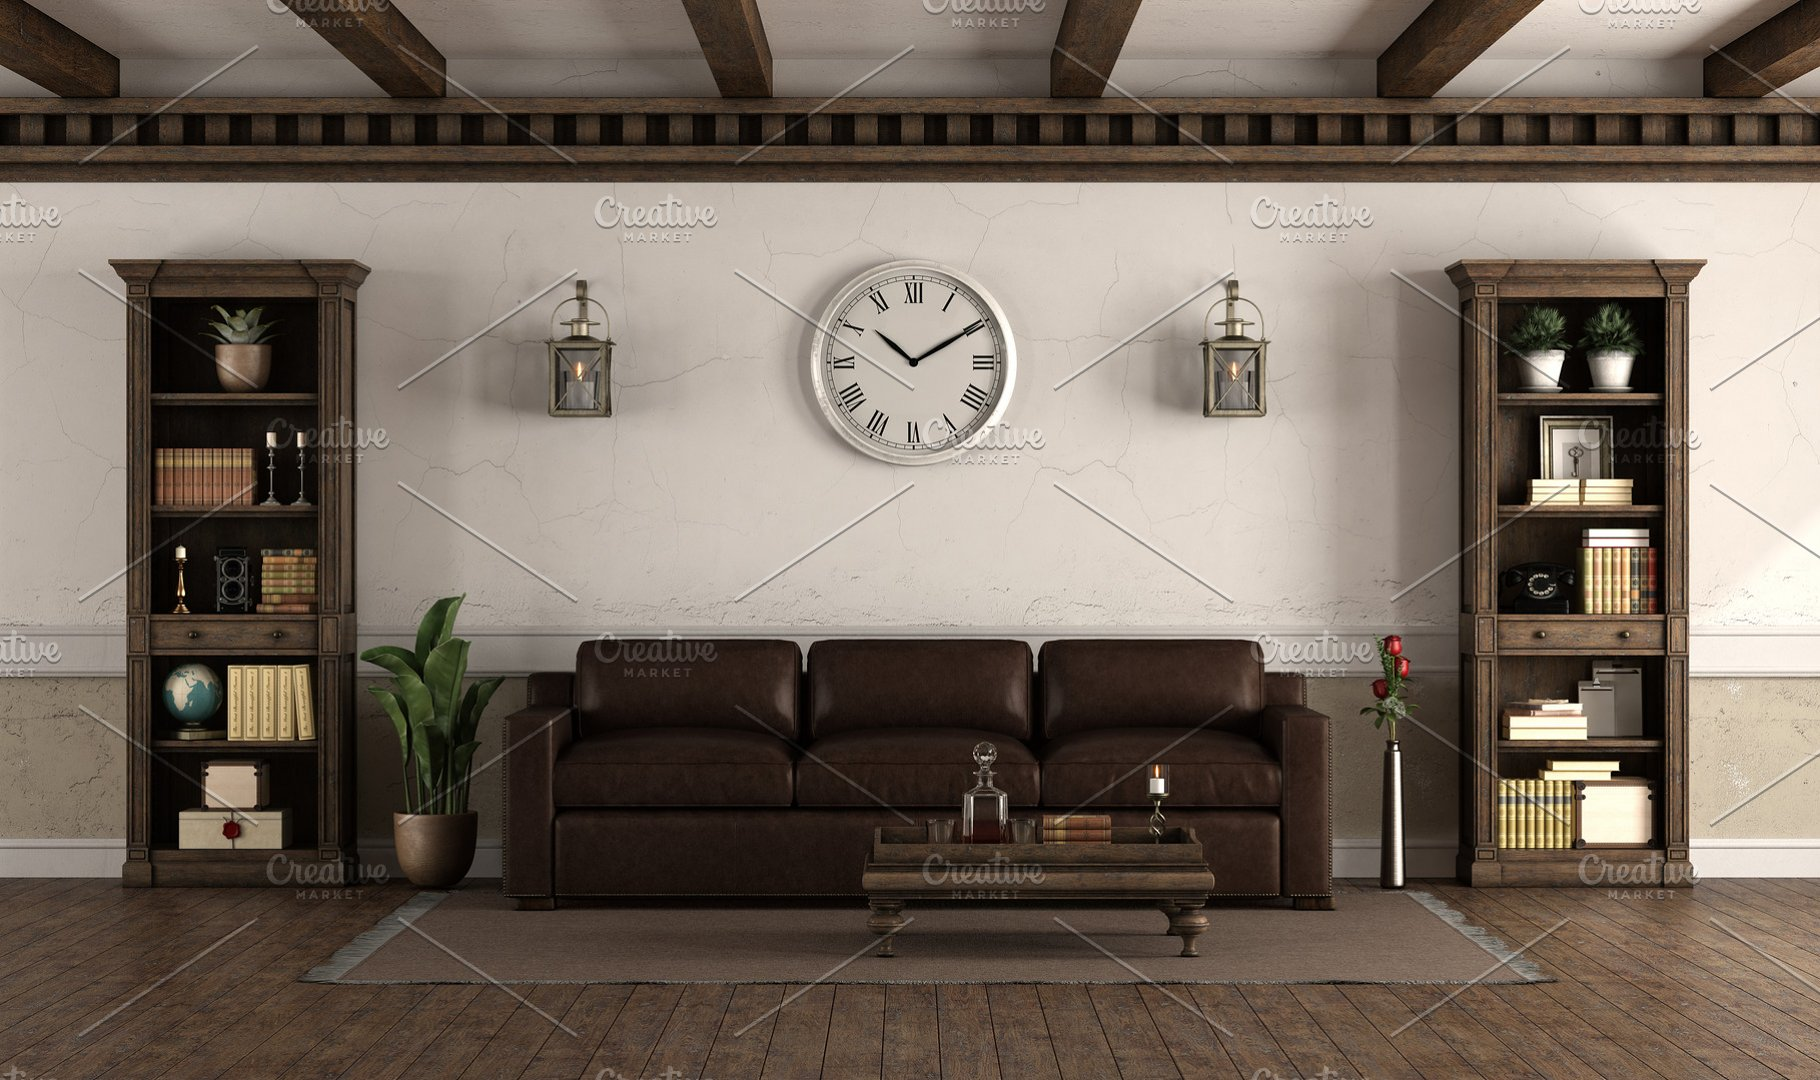 Retro style living room with leather